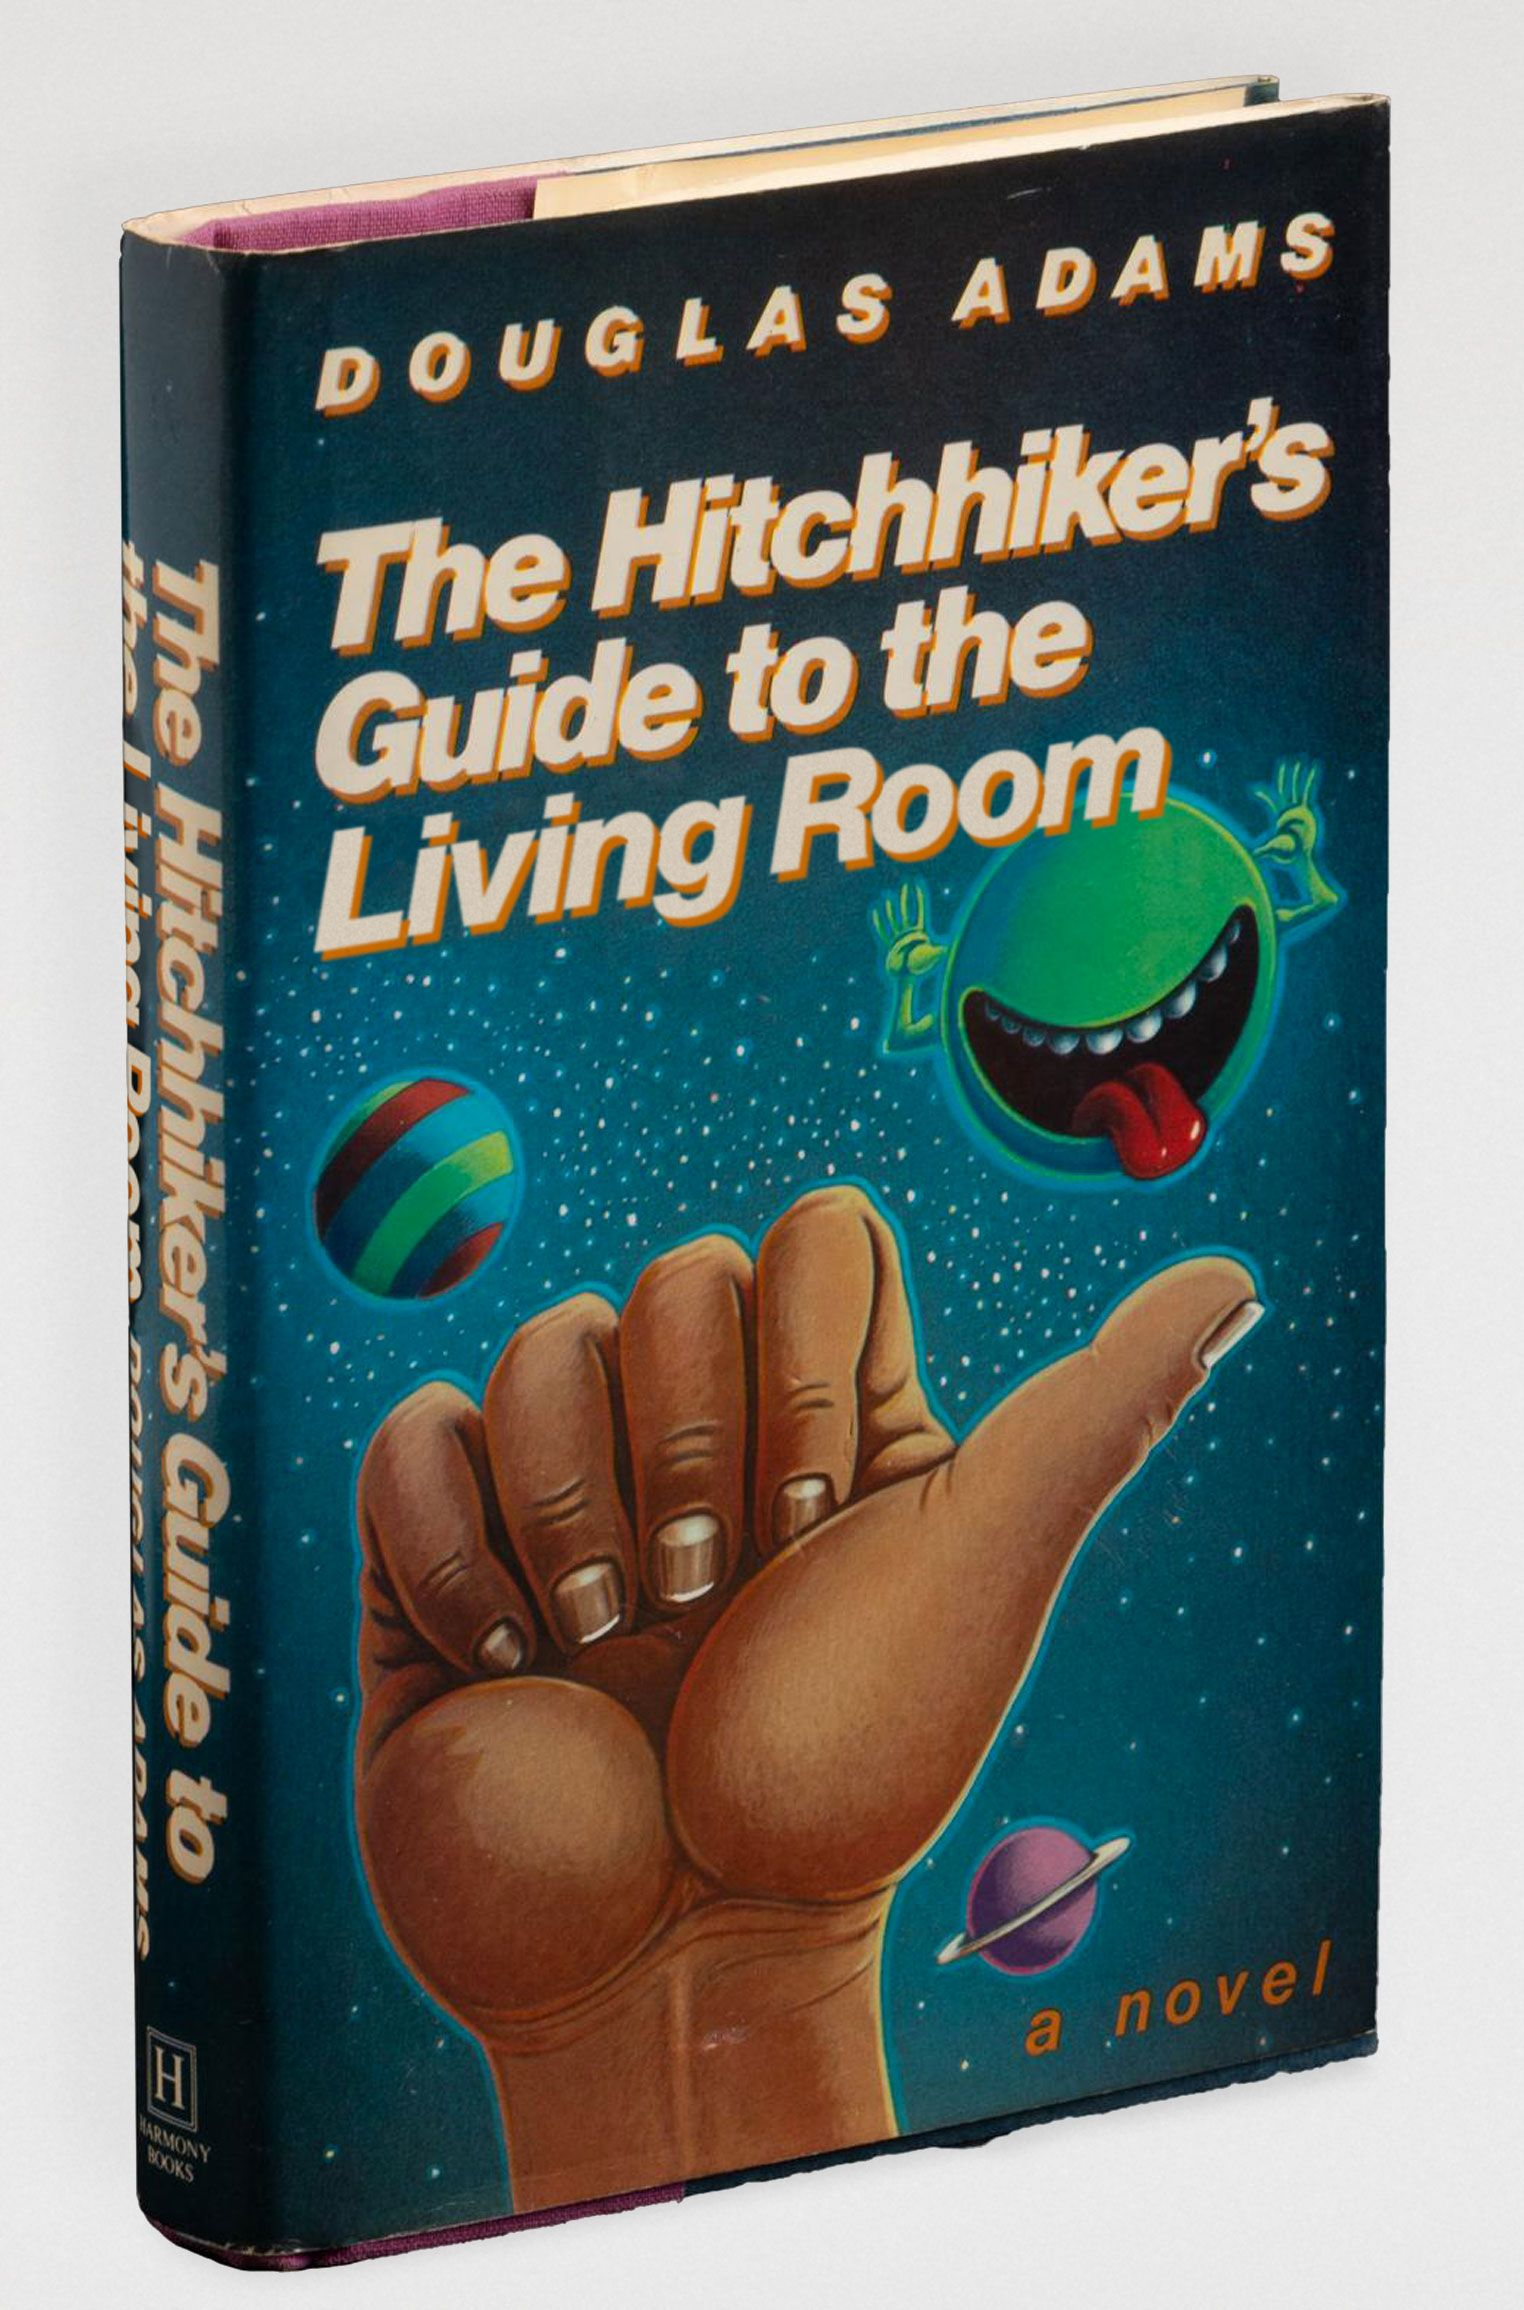 The Hitchhiker's Guide to the Living Room (The Hitchhiker's Guide to the Galaxy, by Douglas Adams)